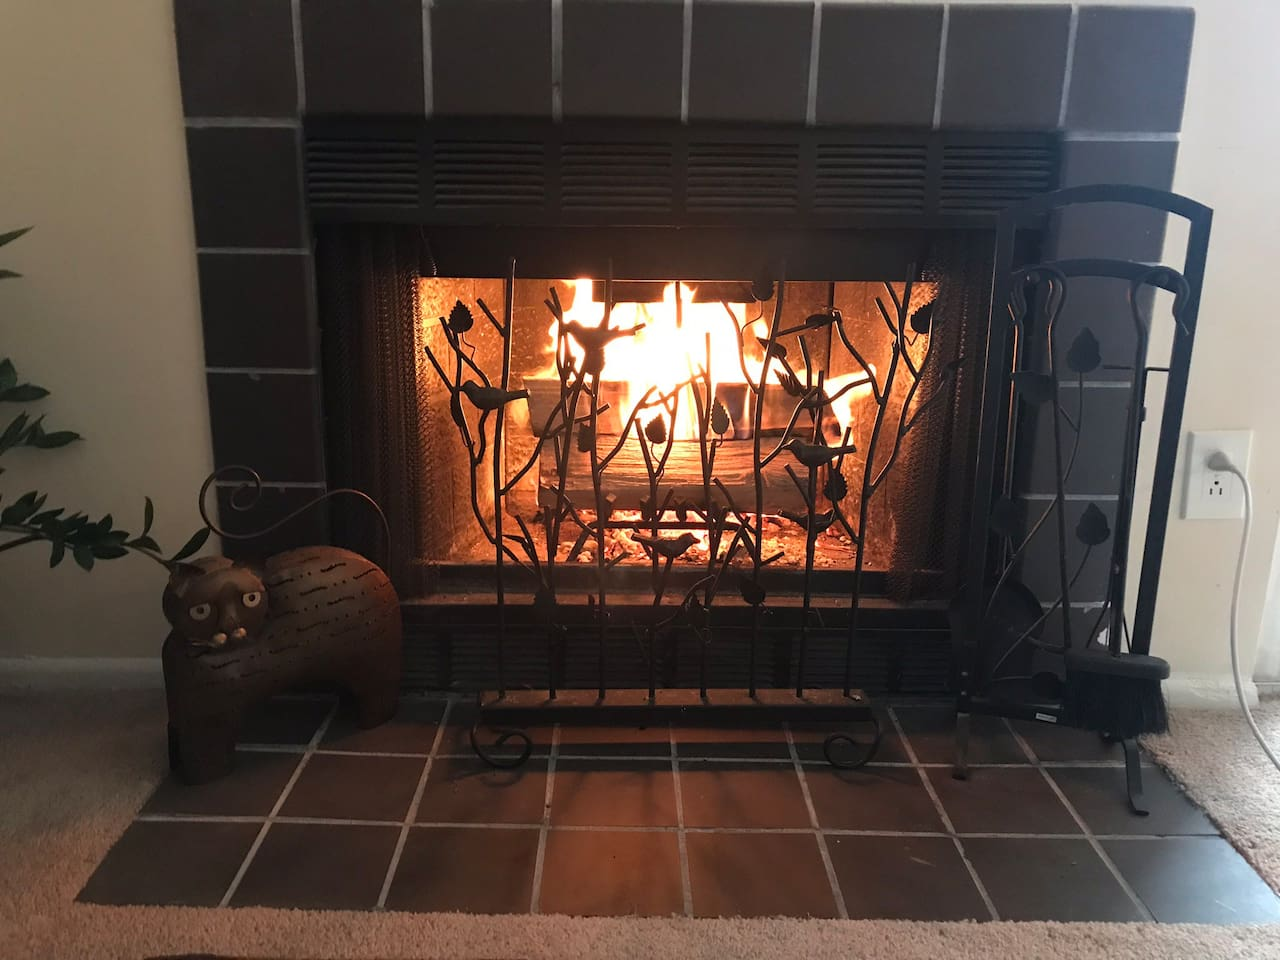 Great real firewood fireplace to cozy up to!